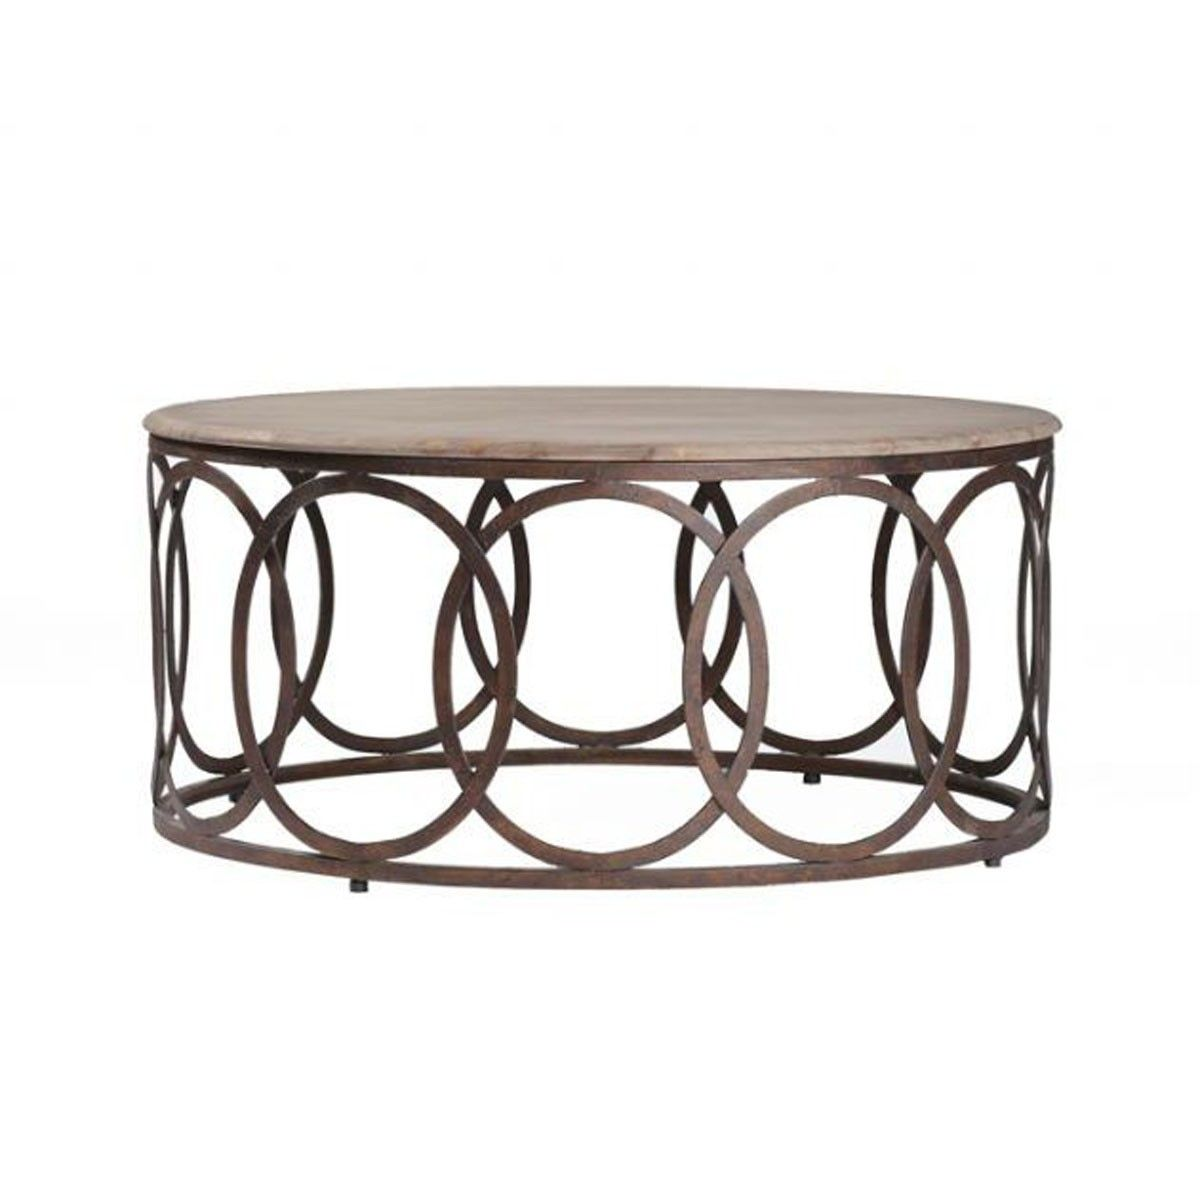 Rustic round coffee table sch ella coffee table  home ideas  pinterest  coffee and room